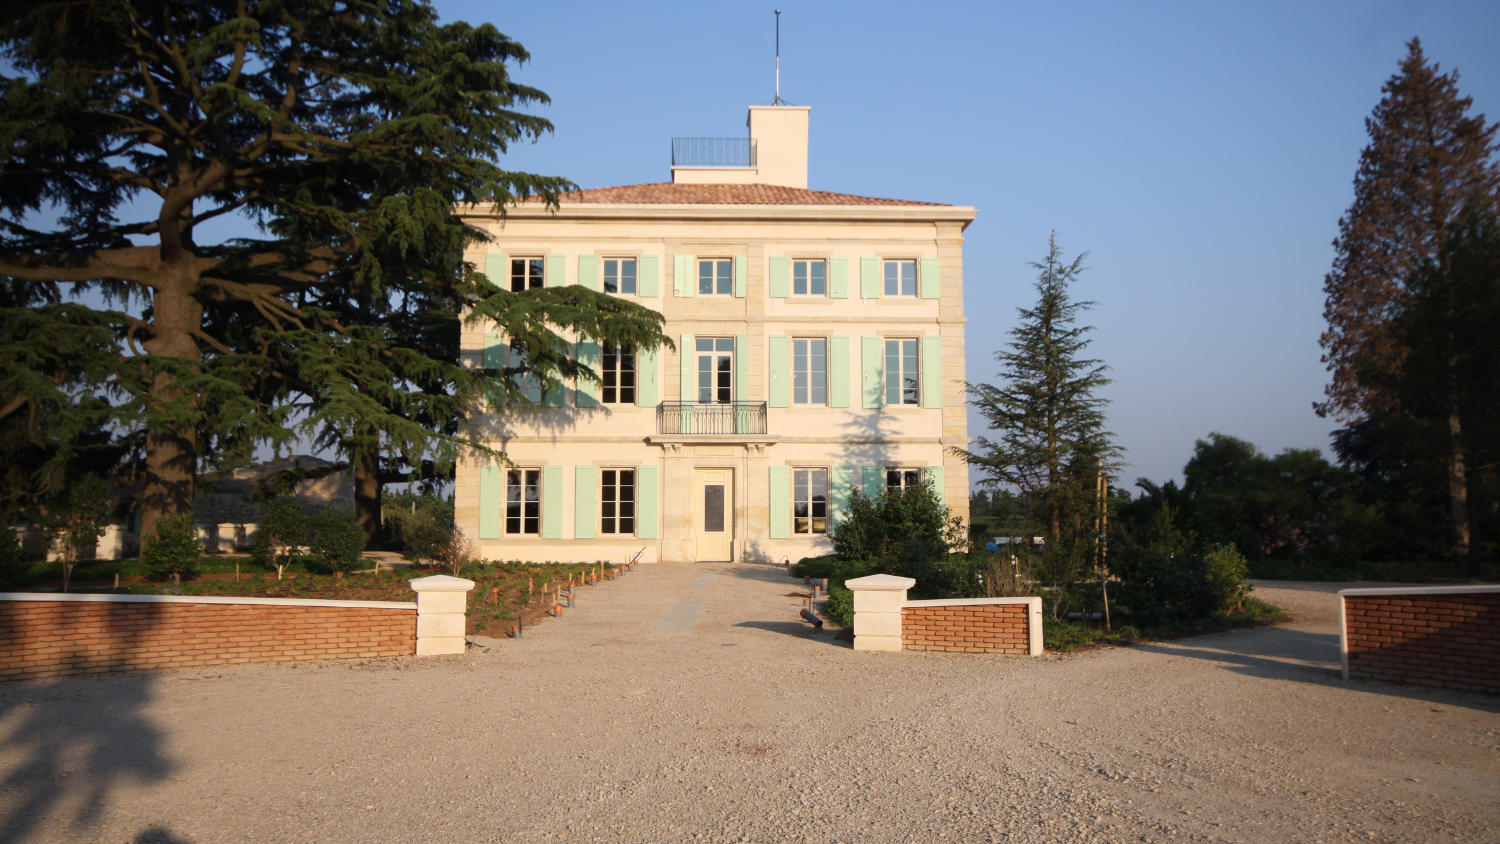 http://www.chateau-perouse.com/assets/bestanden/background/chateau.jpg